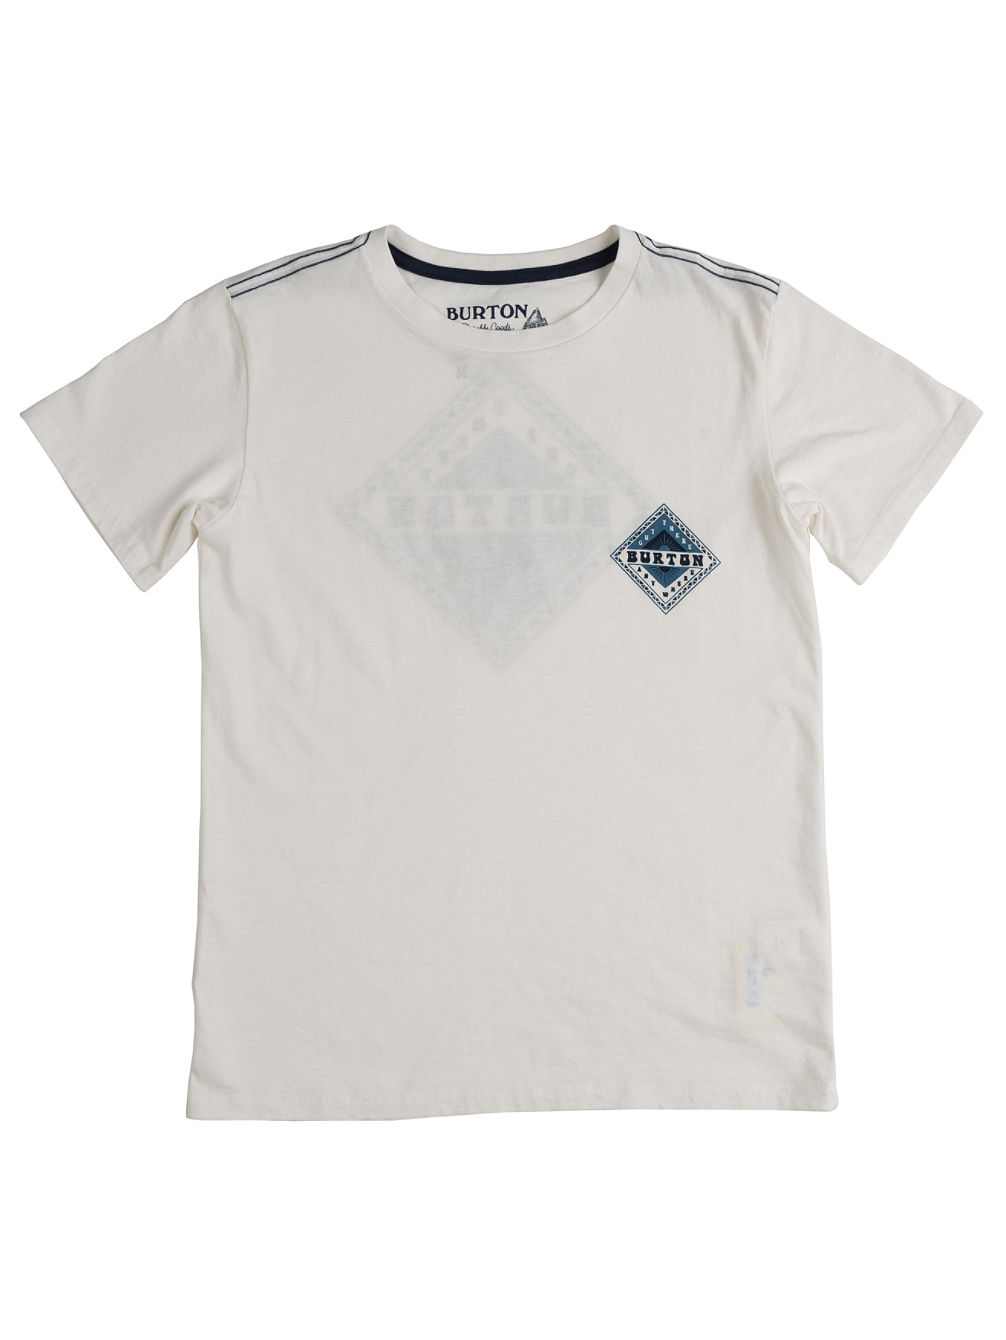 Anchor Point T-Shirt